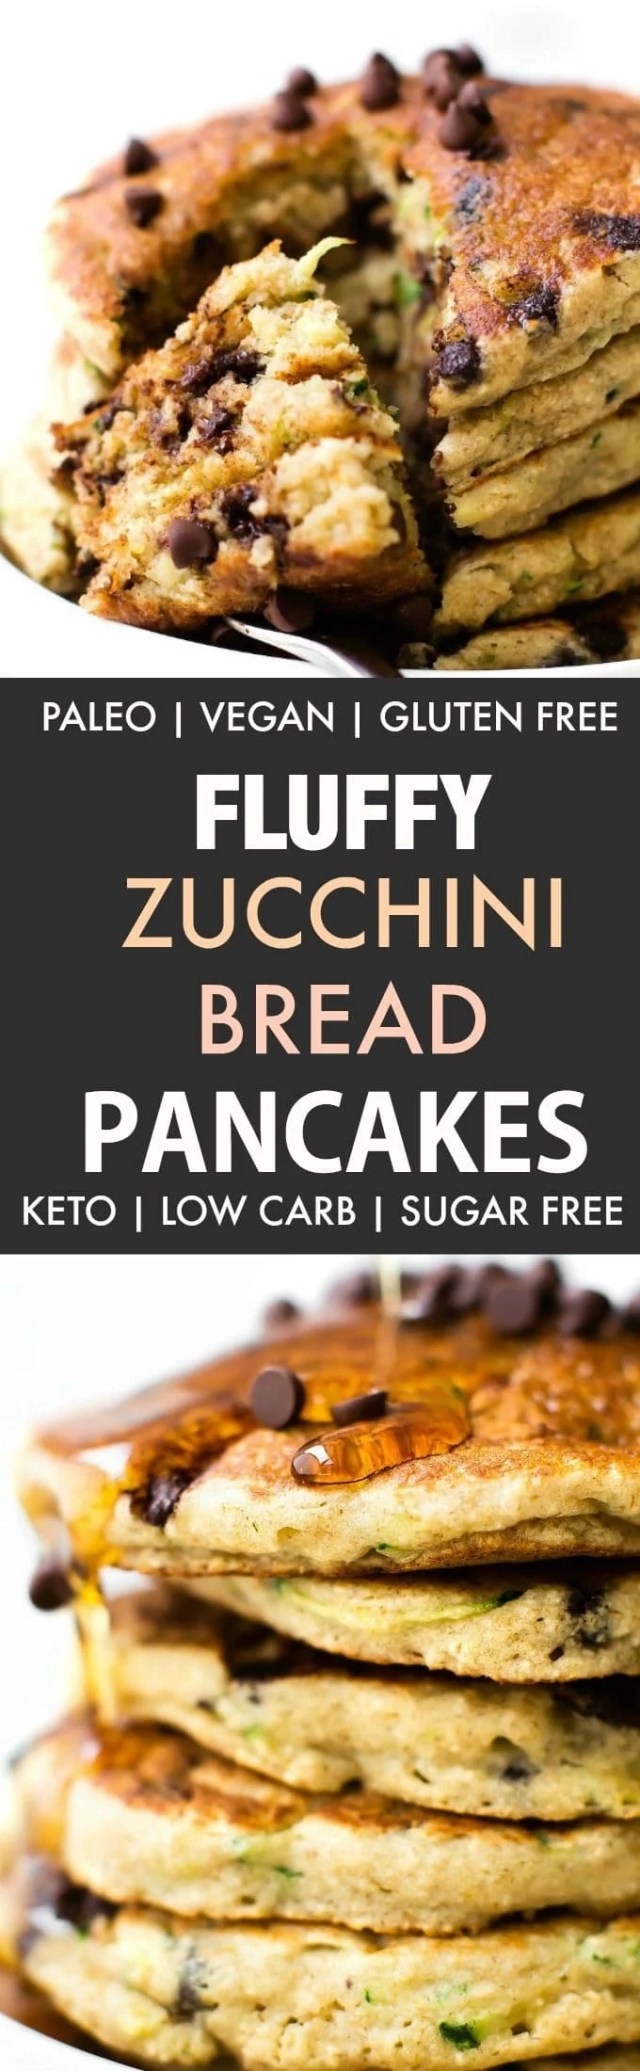 Fluffy Low Carb Keto Pancakes with zucchini